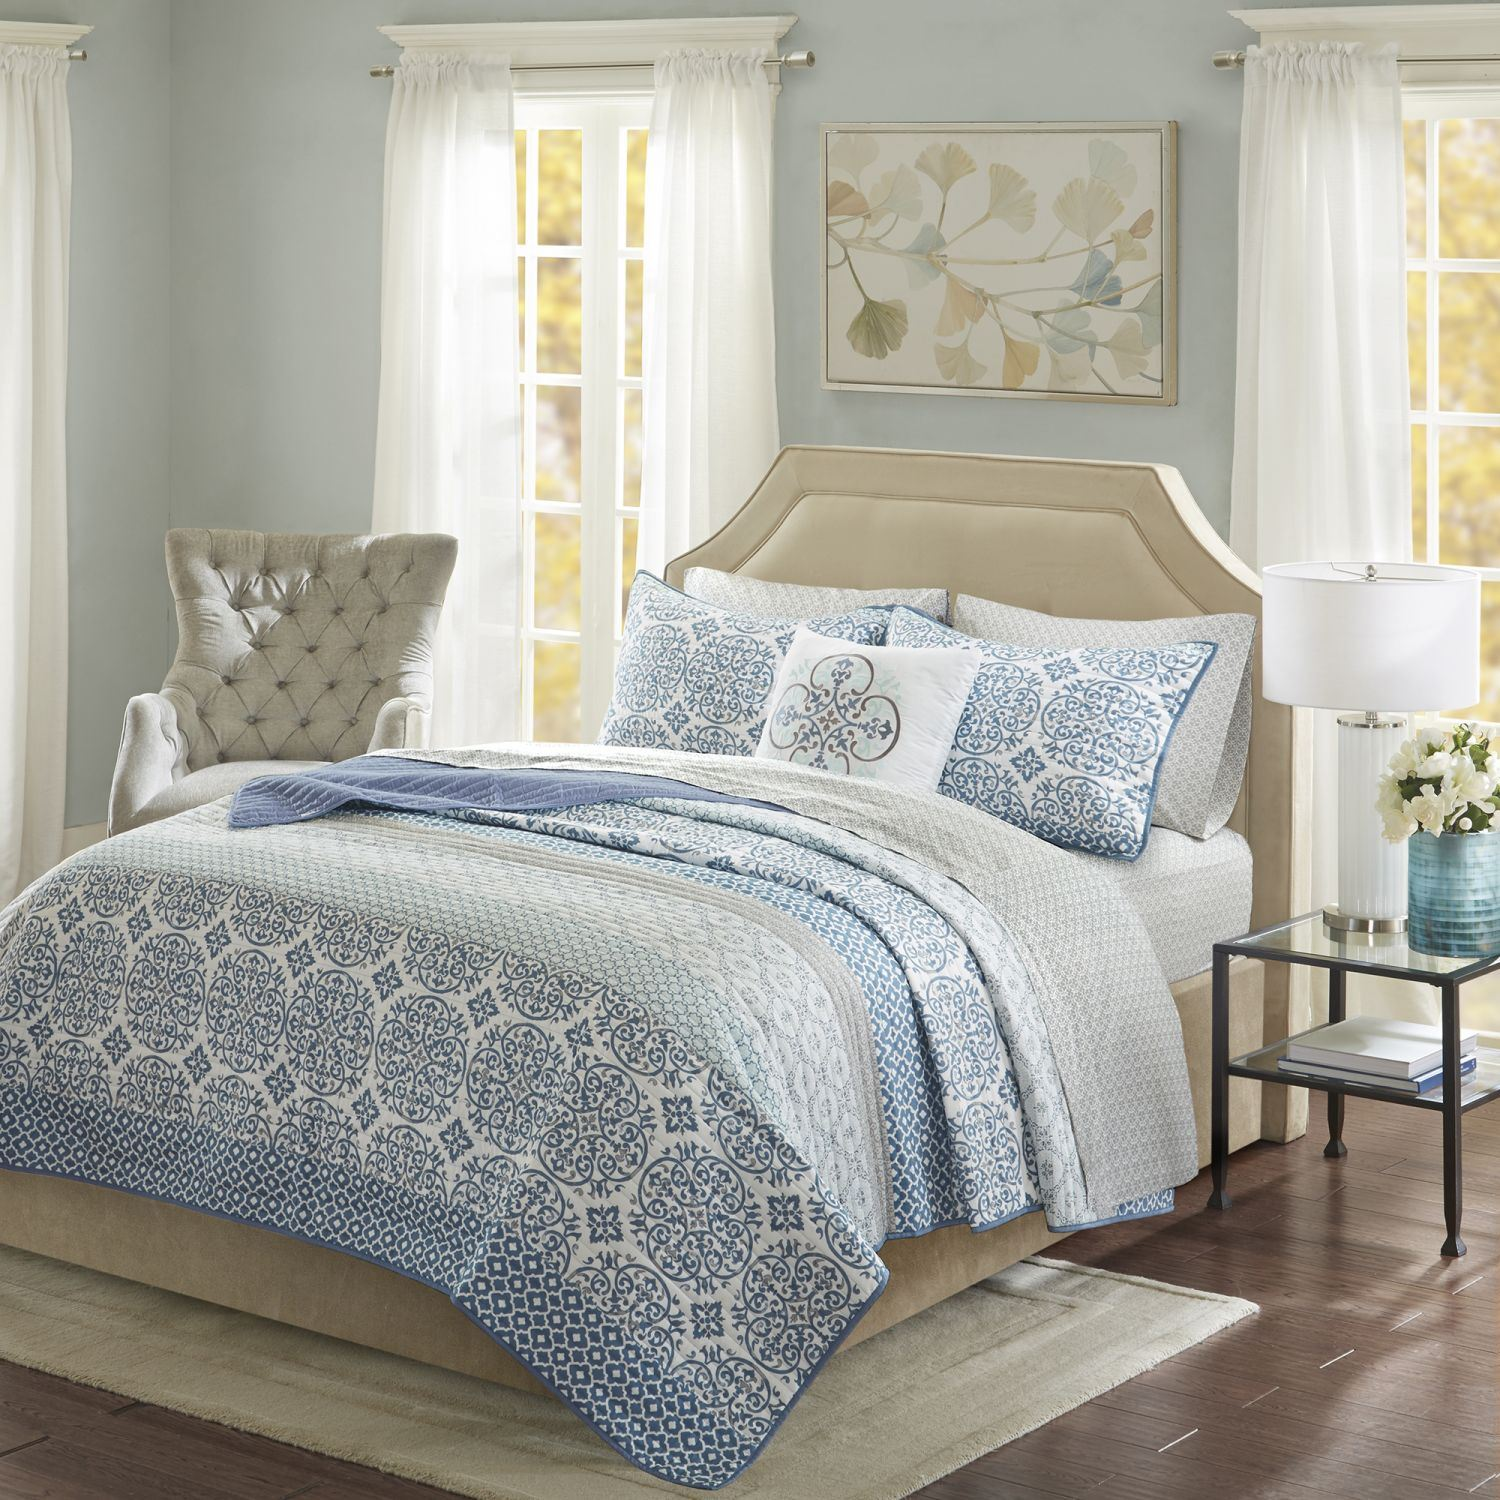 Enjoyable Sybil Queen Coverlet And Sheet Set Caraccident5 Cool Chair Designs And Ideas Caraccident5Info